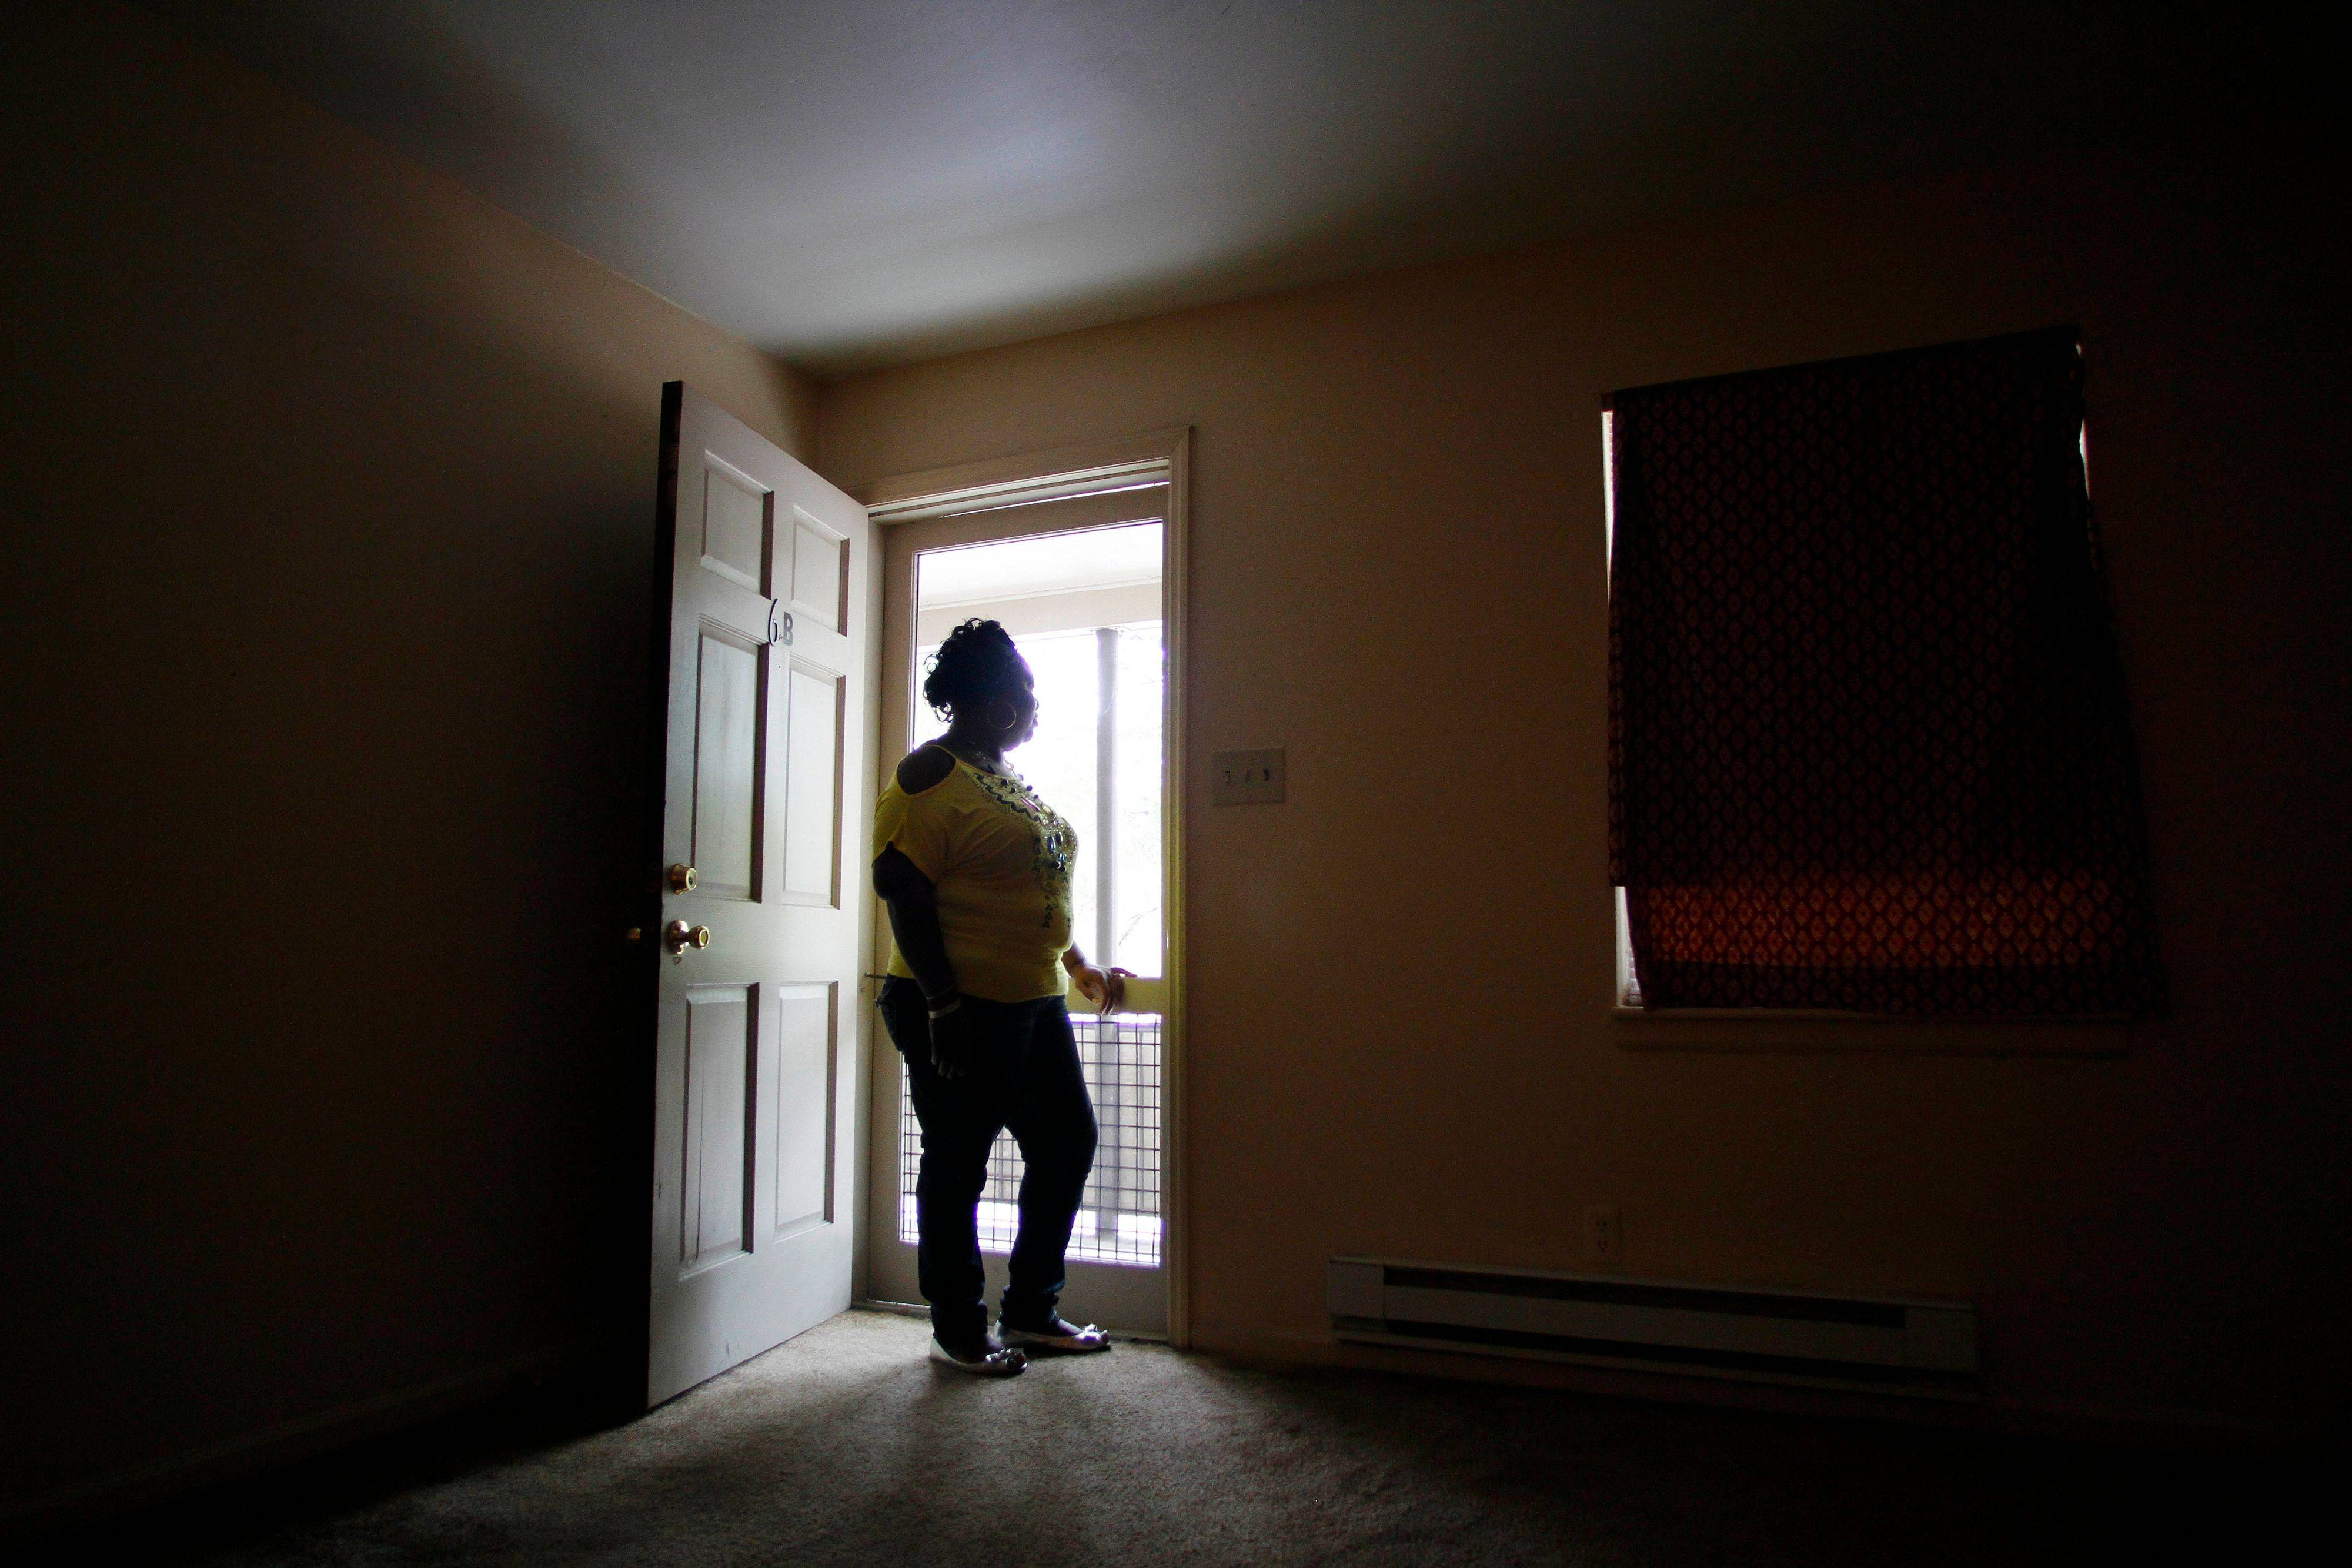 Vickie Webb stands in the doorway of her apartment in Durham, N.C. Webb, 43, lived in the projects in Durham, N.C., for several years before a housing agency helped relocate her and her husband to a better neighborhood.